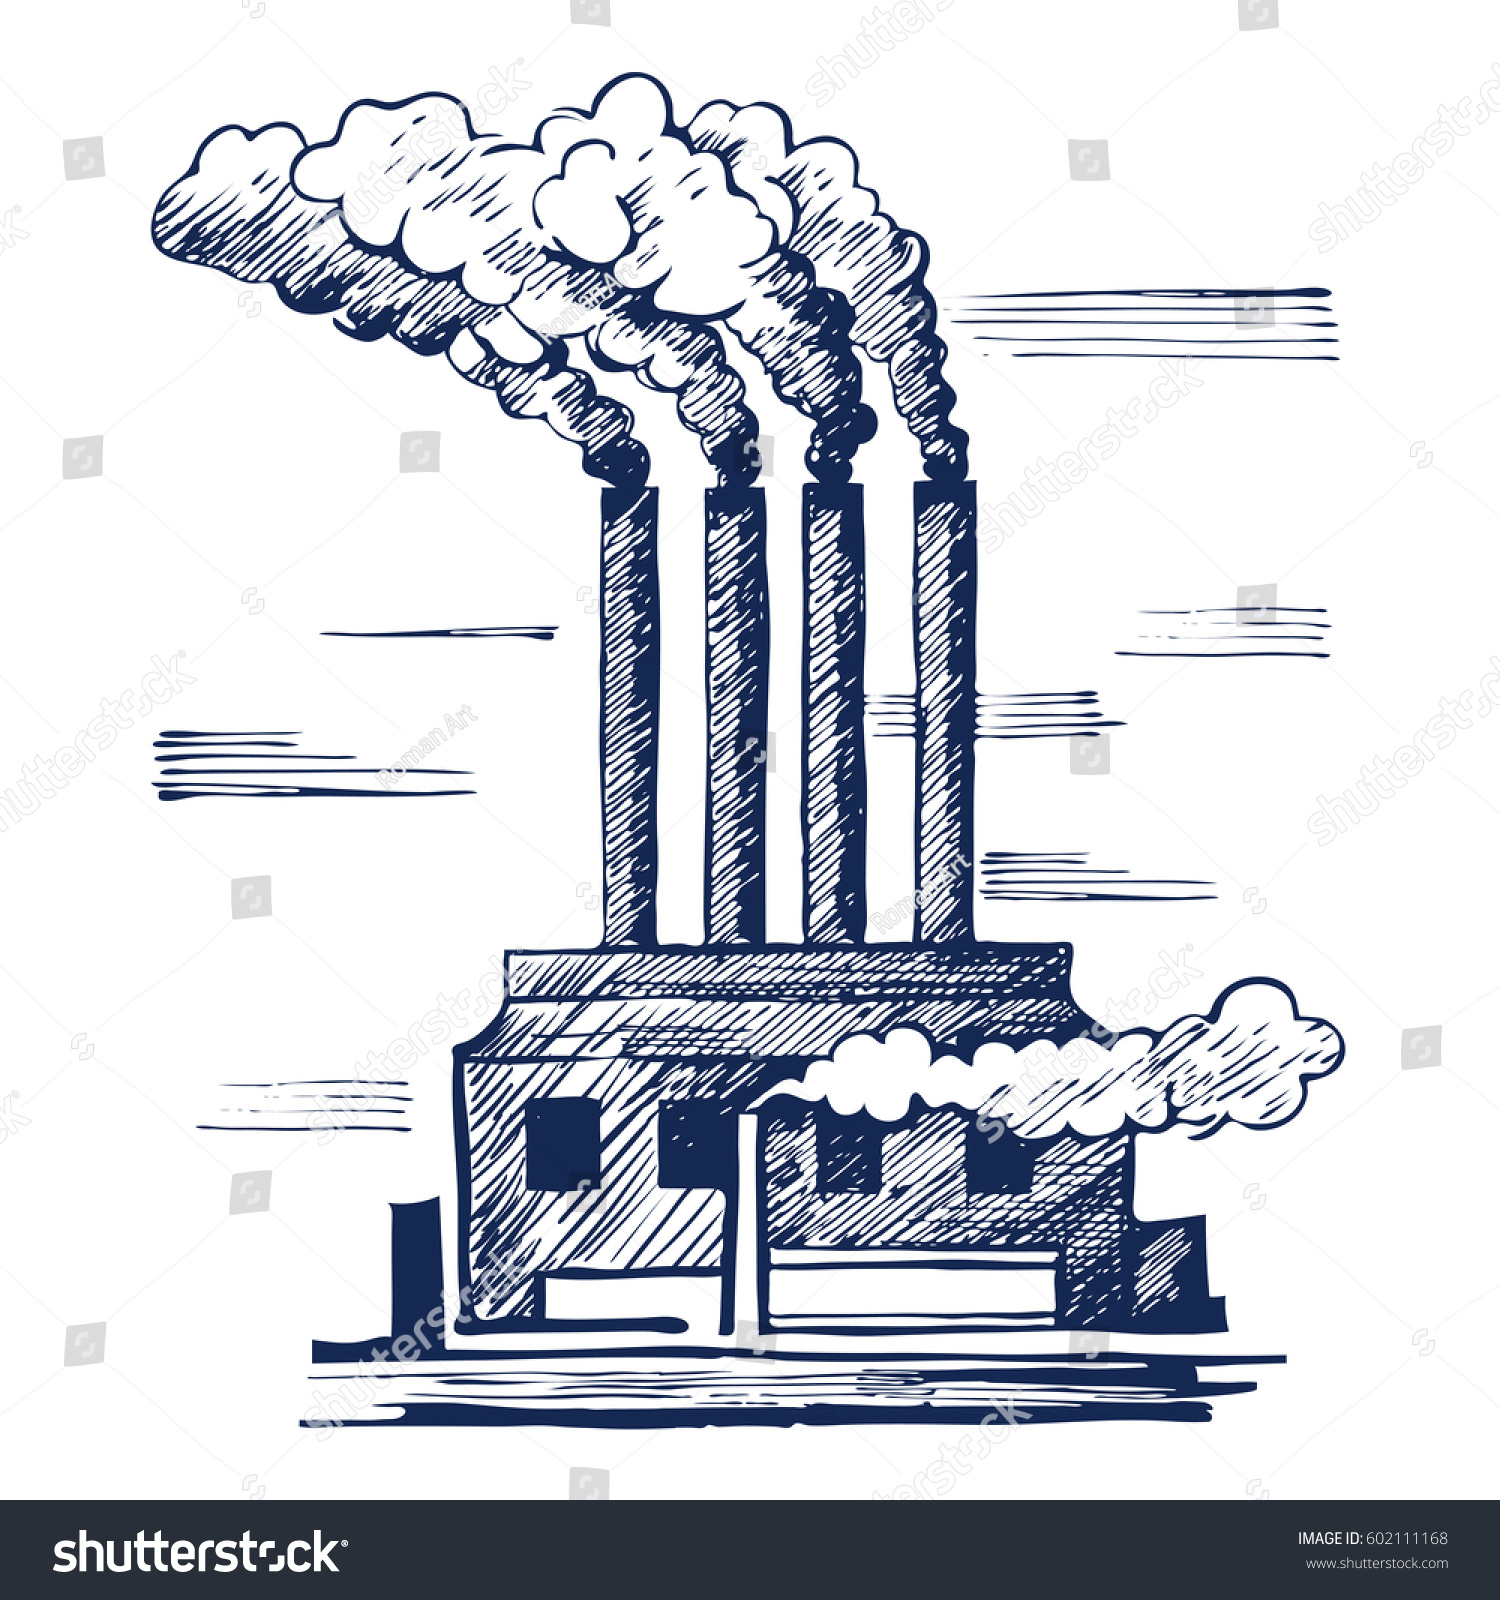 Air ecology and the problem of air pollution harmful gas emissions by industry vector illustration sketch doodle style vector